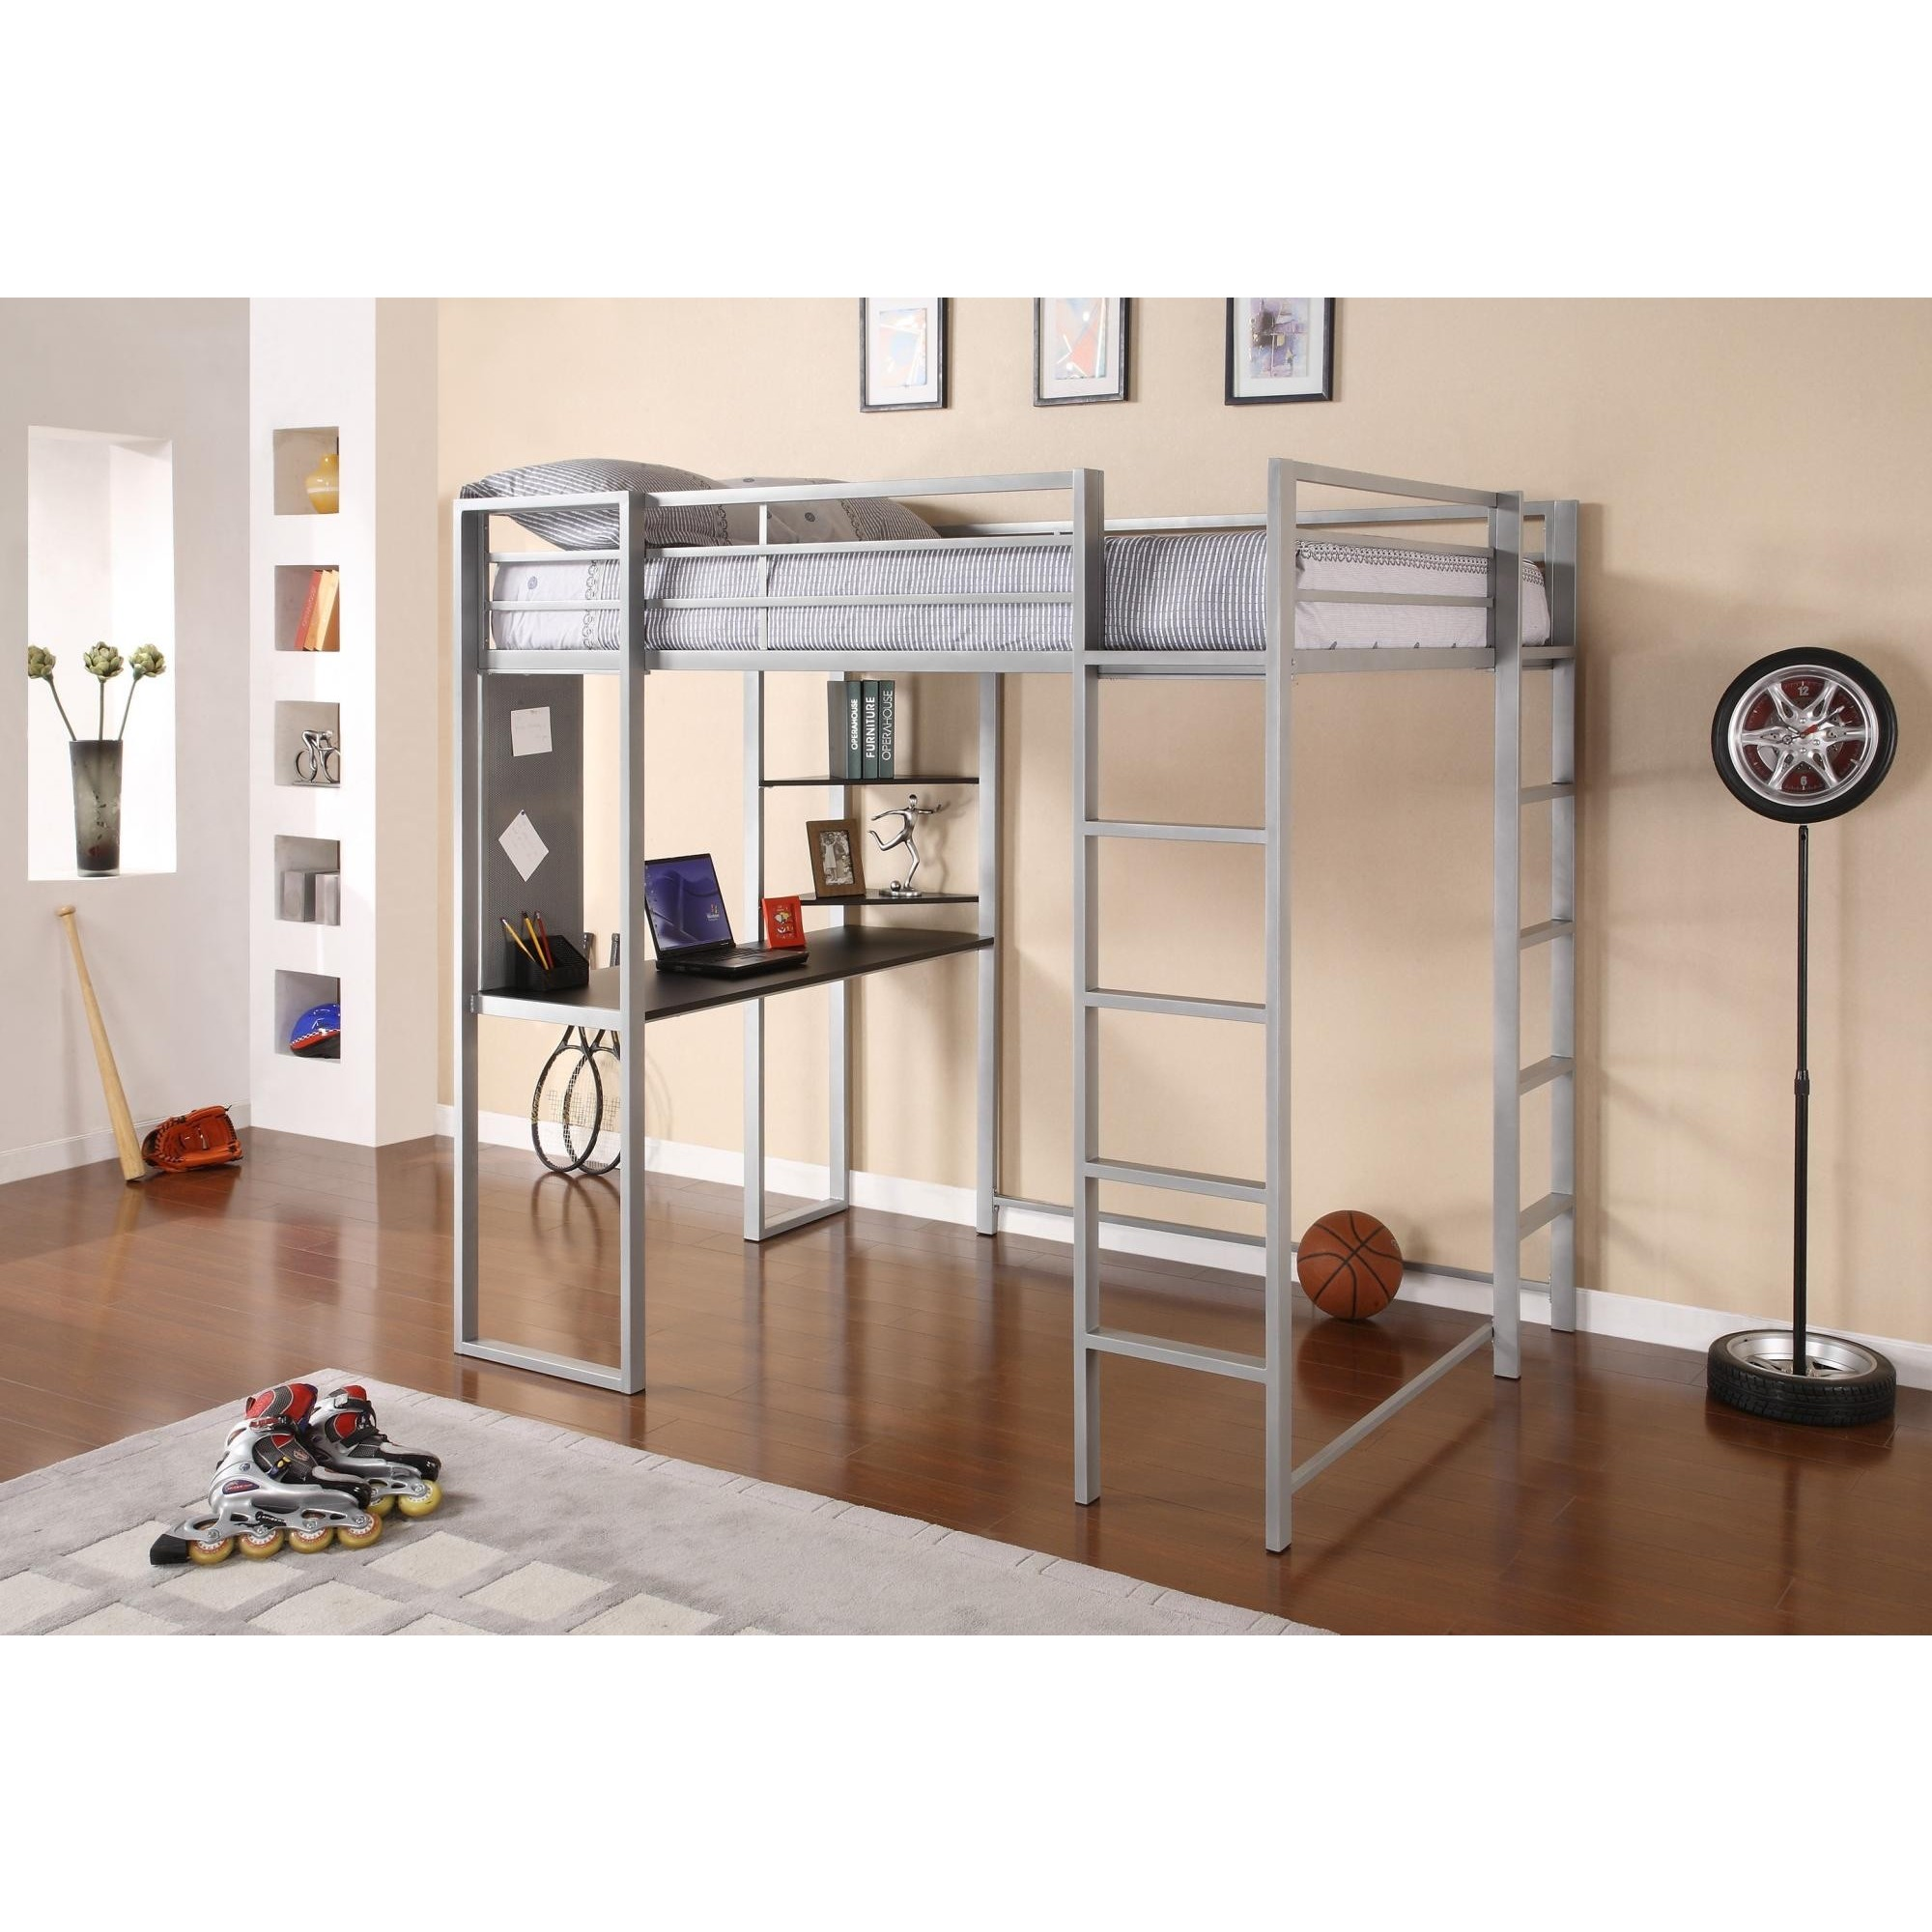 Shop Taylor Olive Tubmill Abode Full Size Metal Loft Bed Free